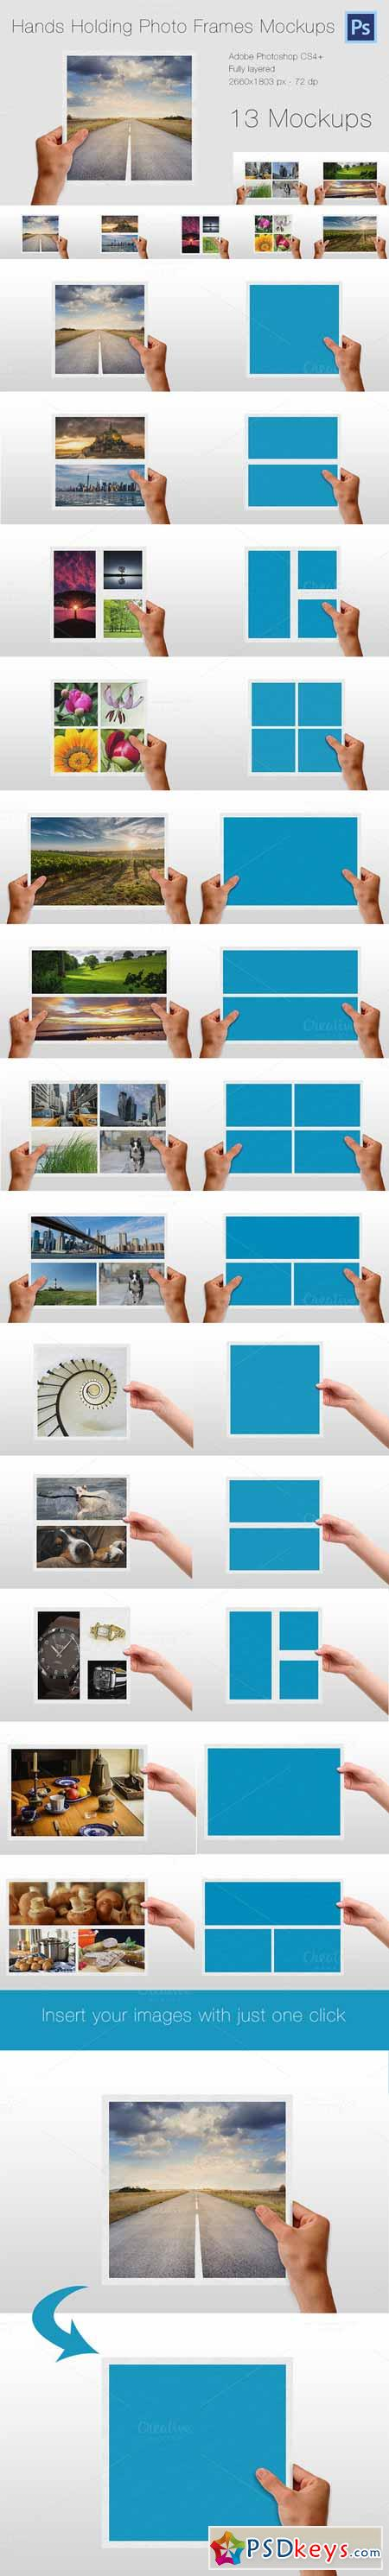 Hands Holding Photo Frames Mockups 404459